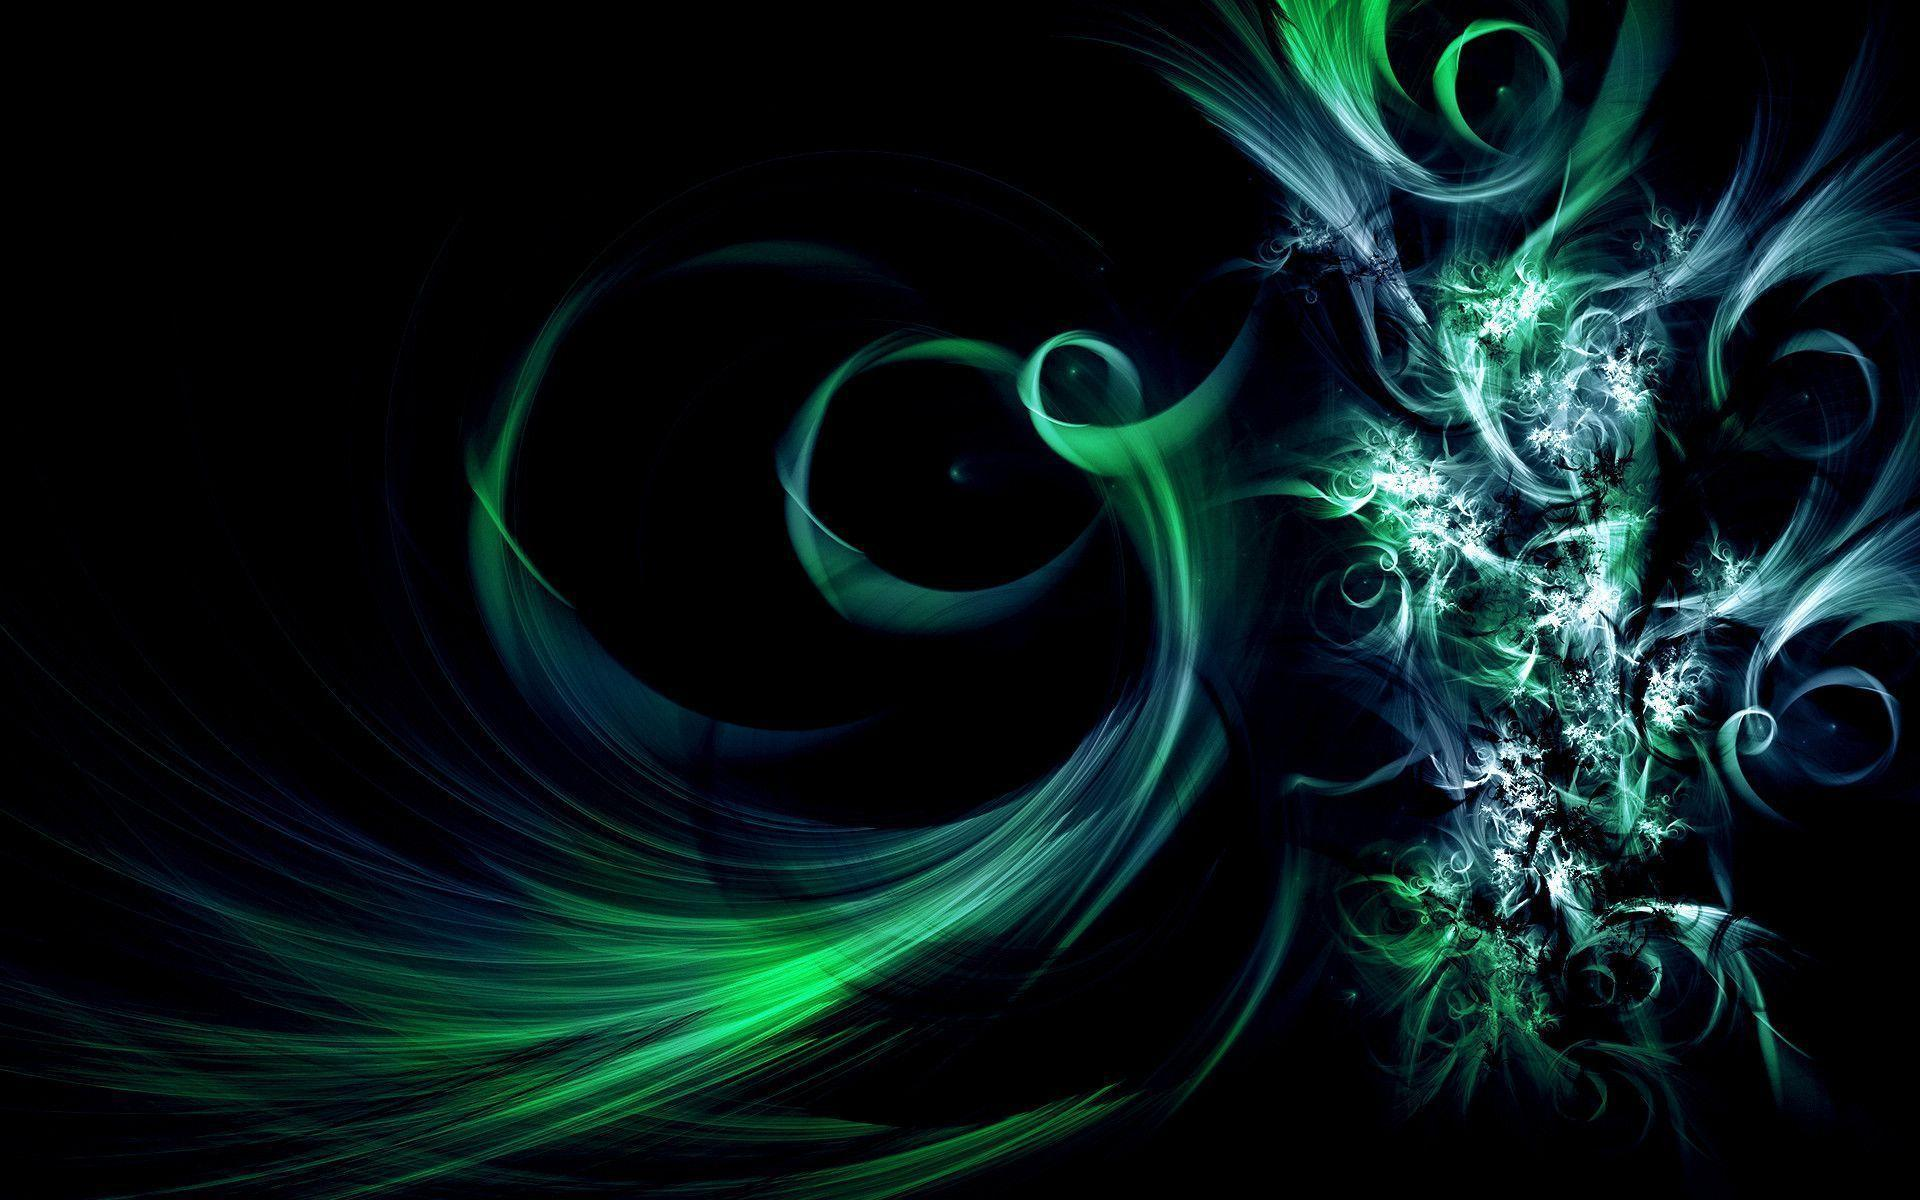 Cool Music Backgrounds Wallpapers